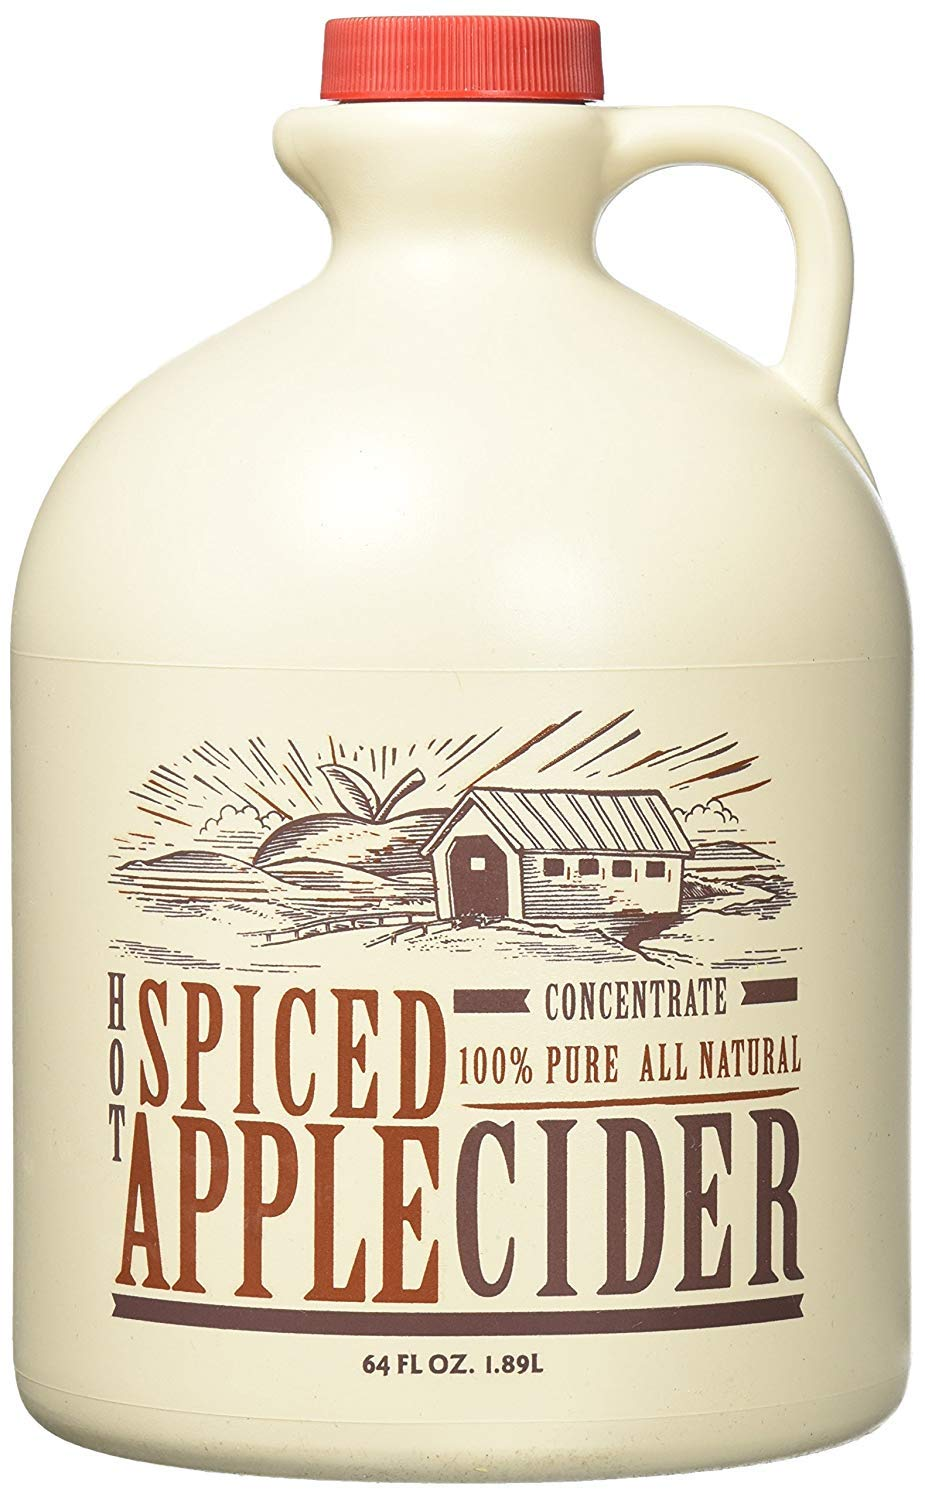 Mountain Cider Company Hot Spiced Cider Concentrate, 64 oz (Case of 4) by Cider Company